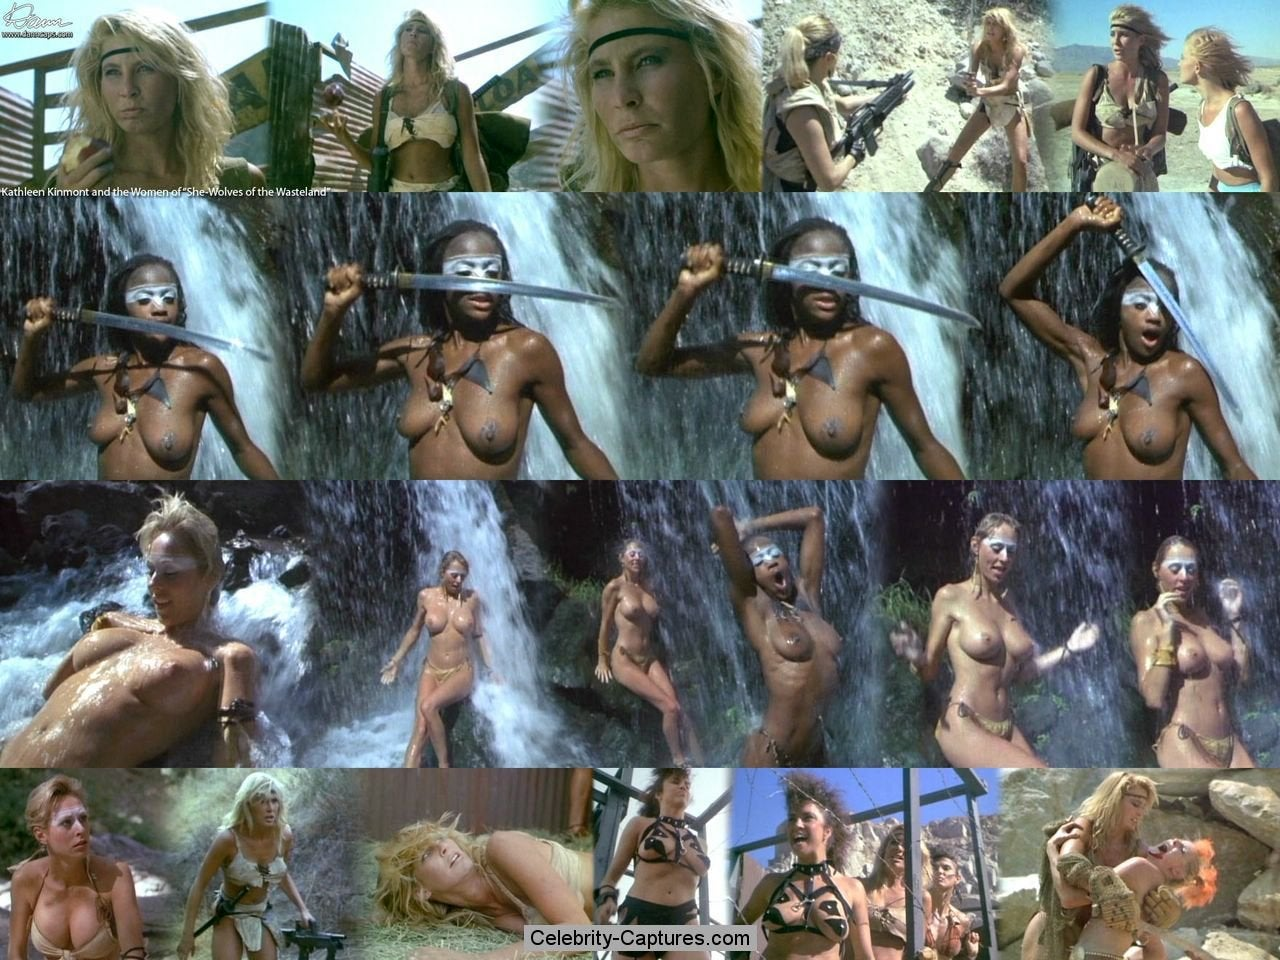 Kathleen Kinmont Naked Vidcaps From She Wolves Of The Wasteland NSFW